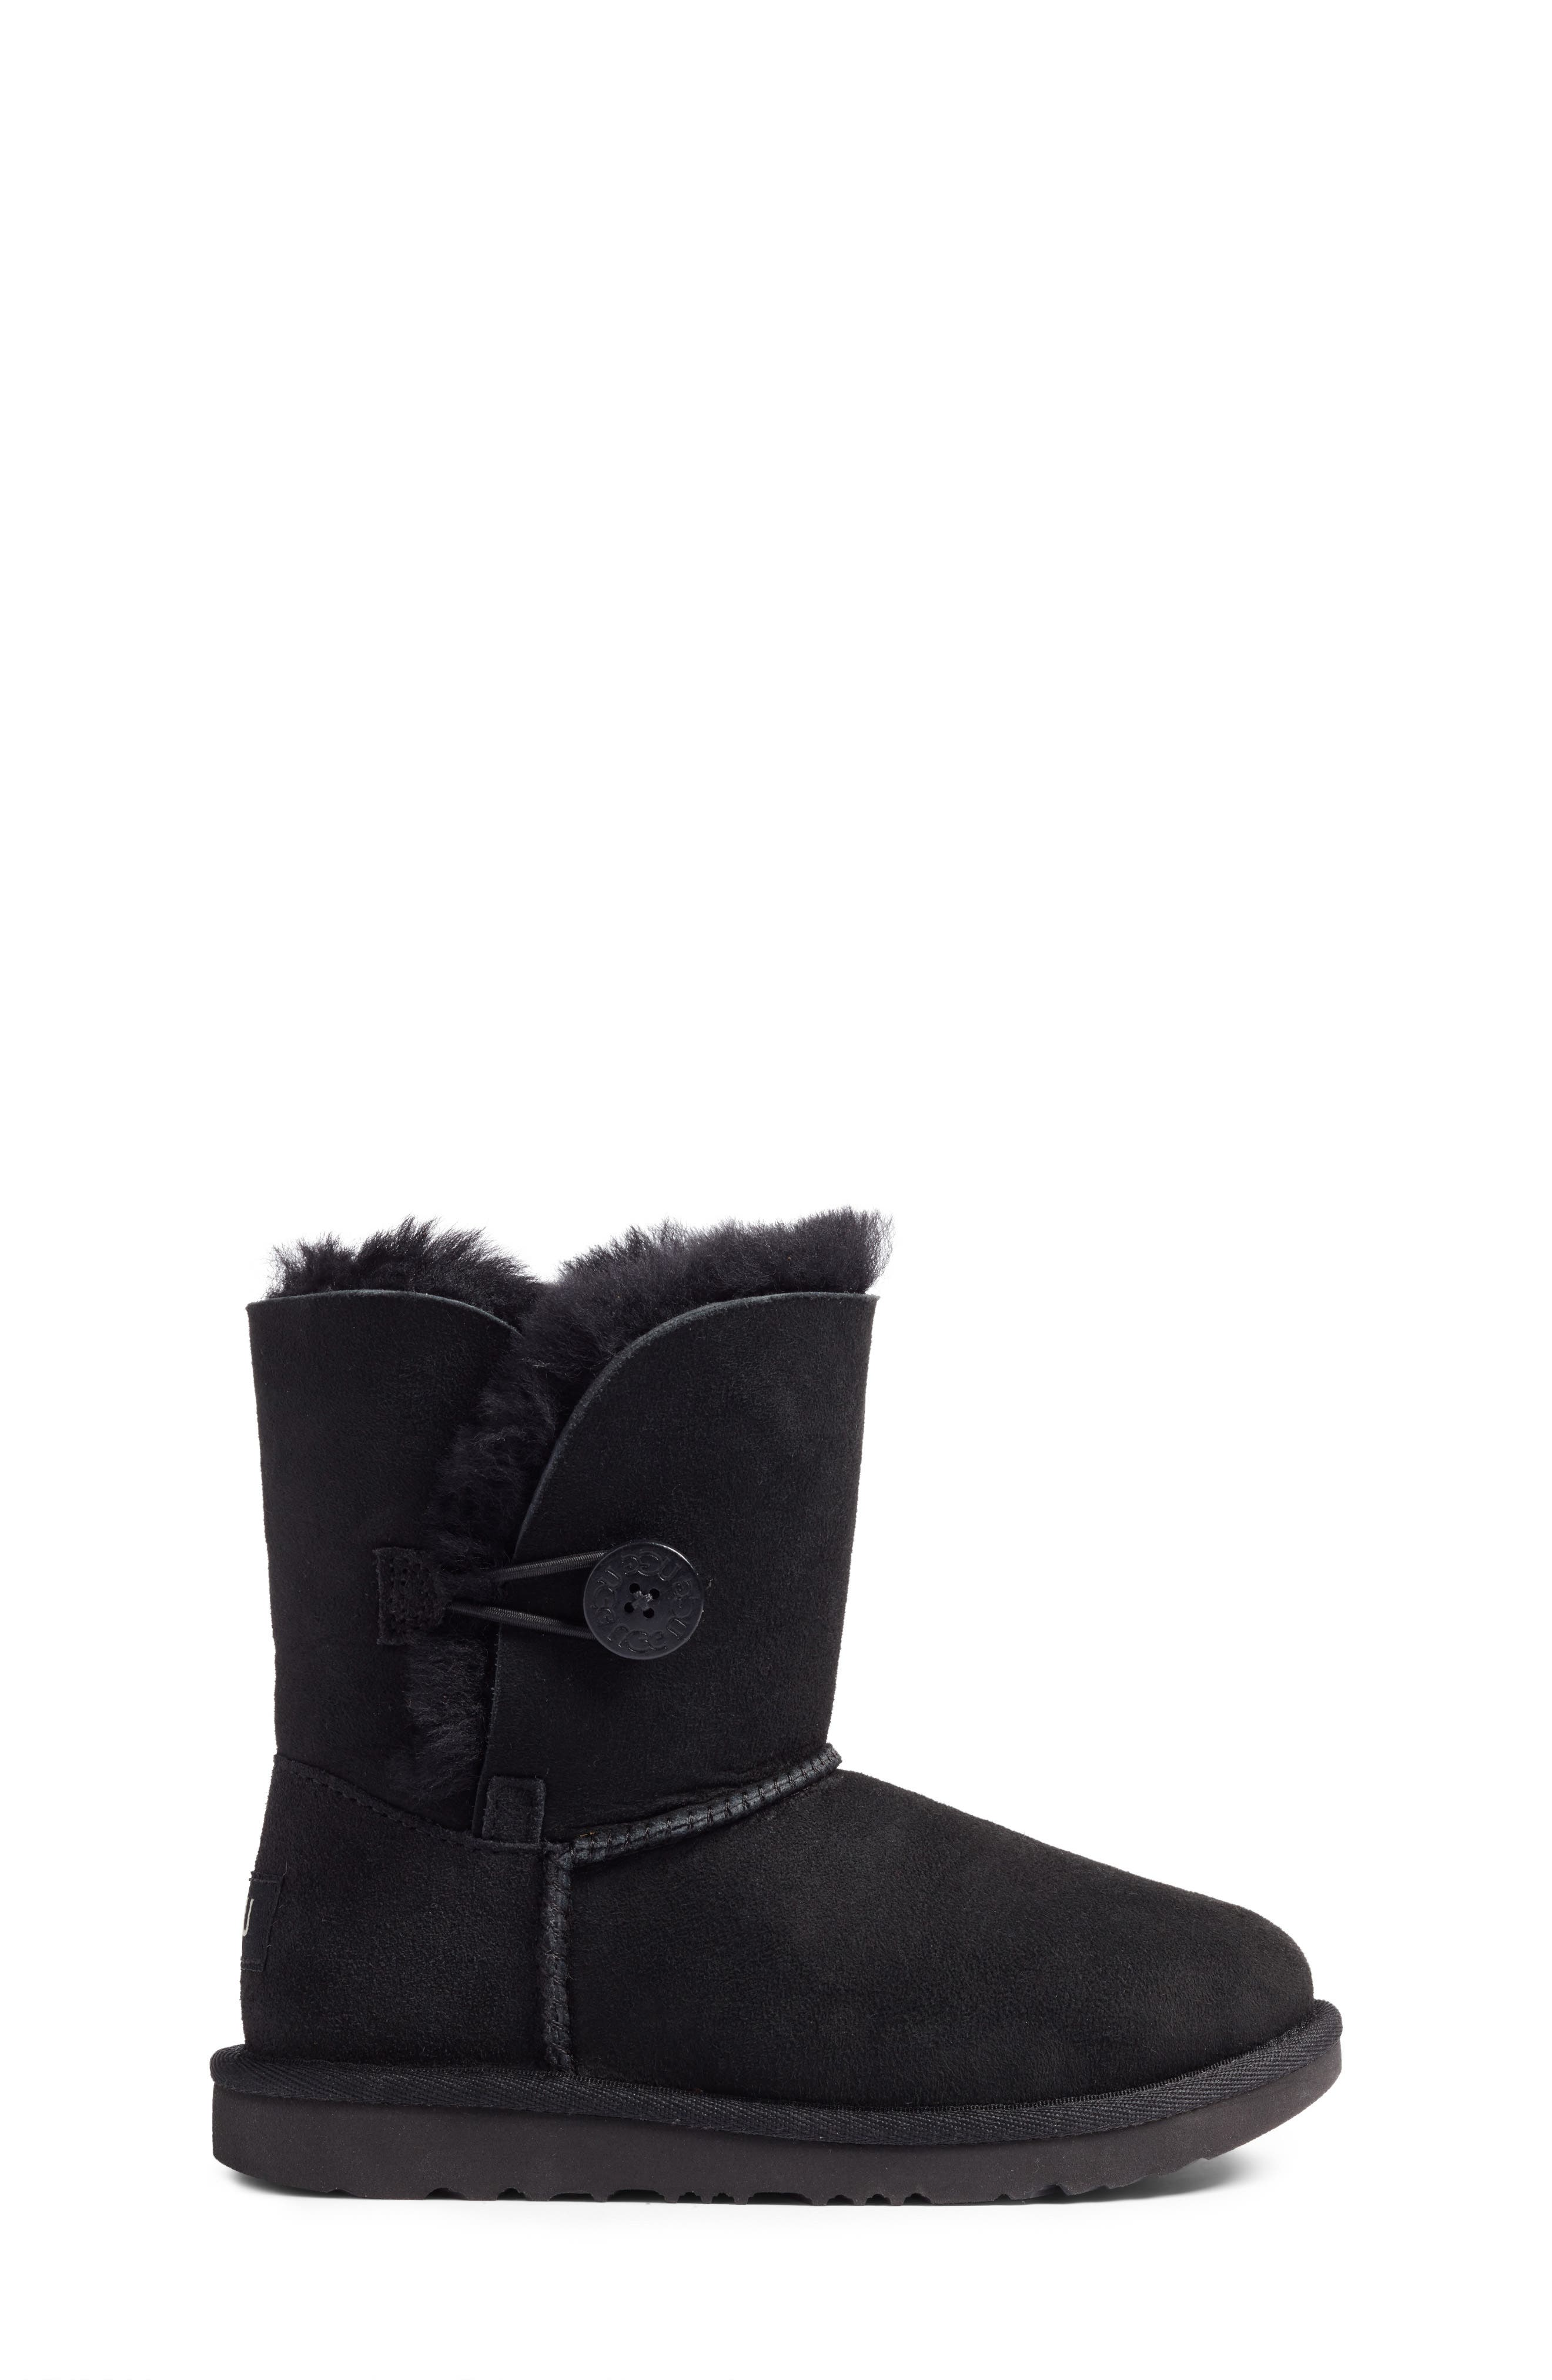 Bailey Button II Water Resistant Genuine Shearling Boot,                             Alternate thumbnail 3, color,                             BLACK SUEDE